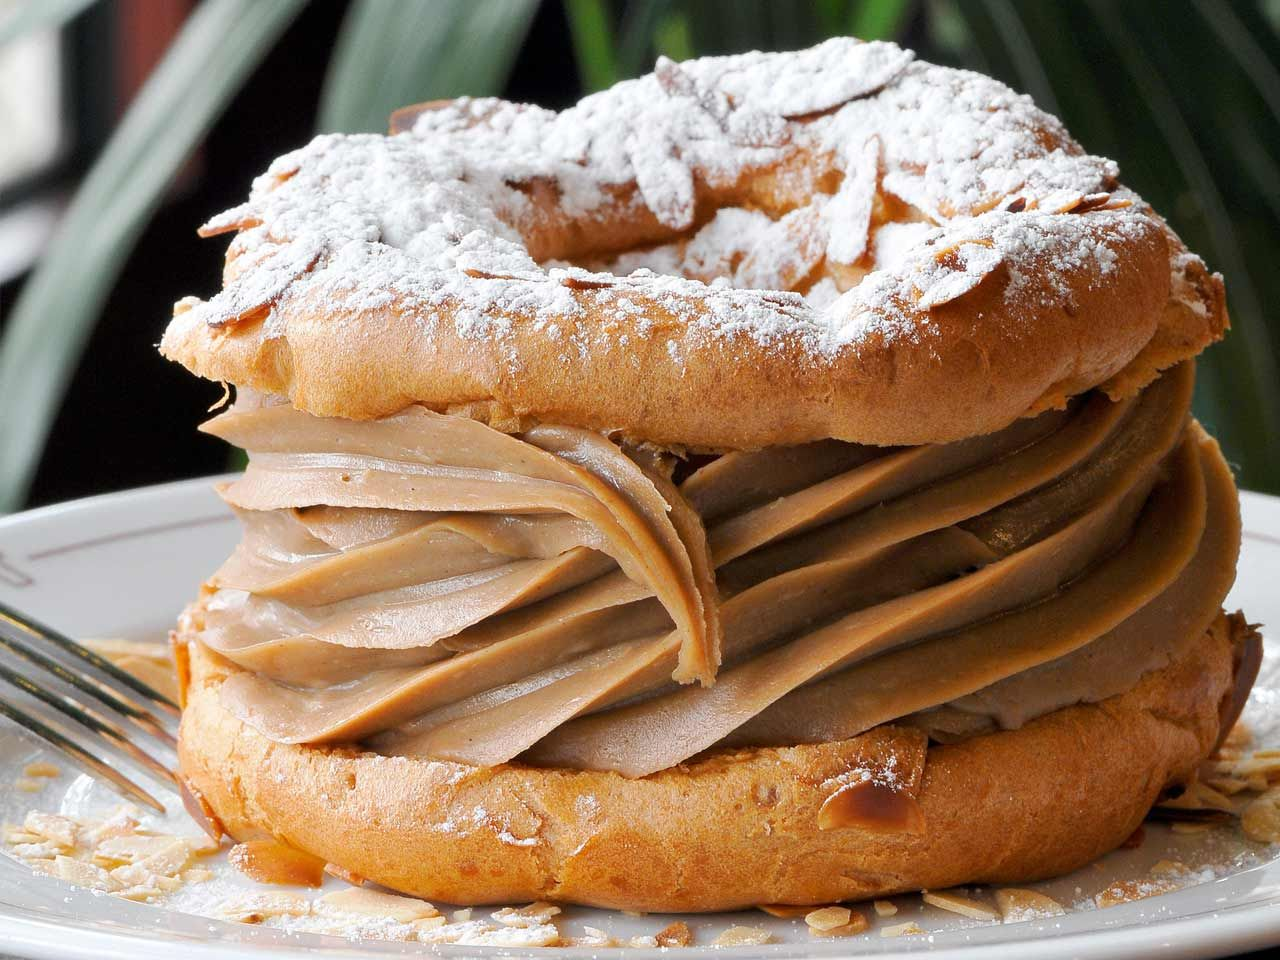 Paris brest my favorite french pastry french recipes for Postres franceses faciles